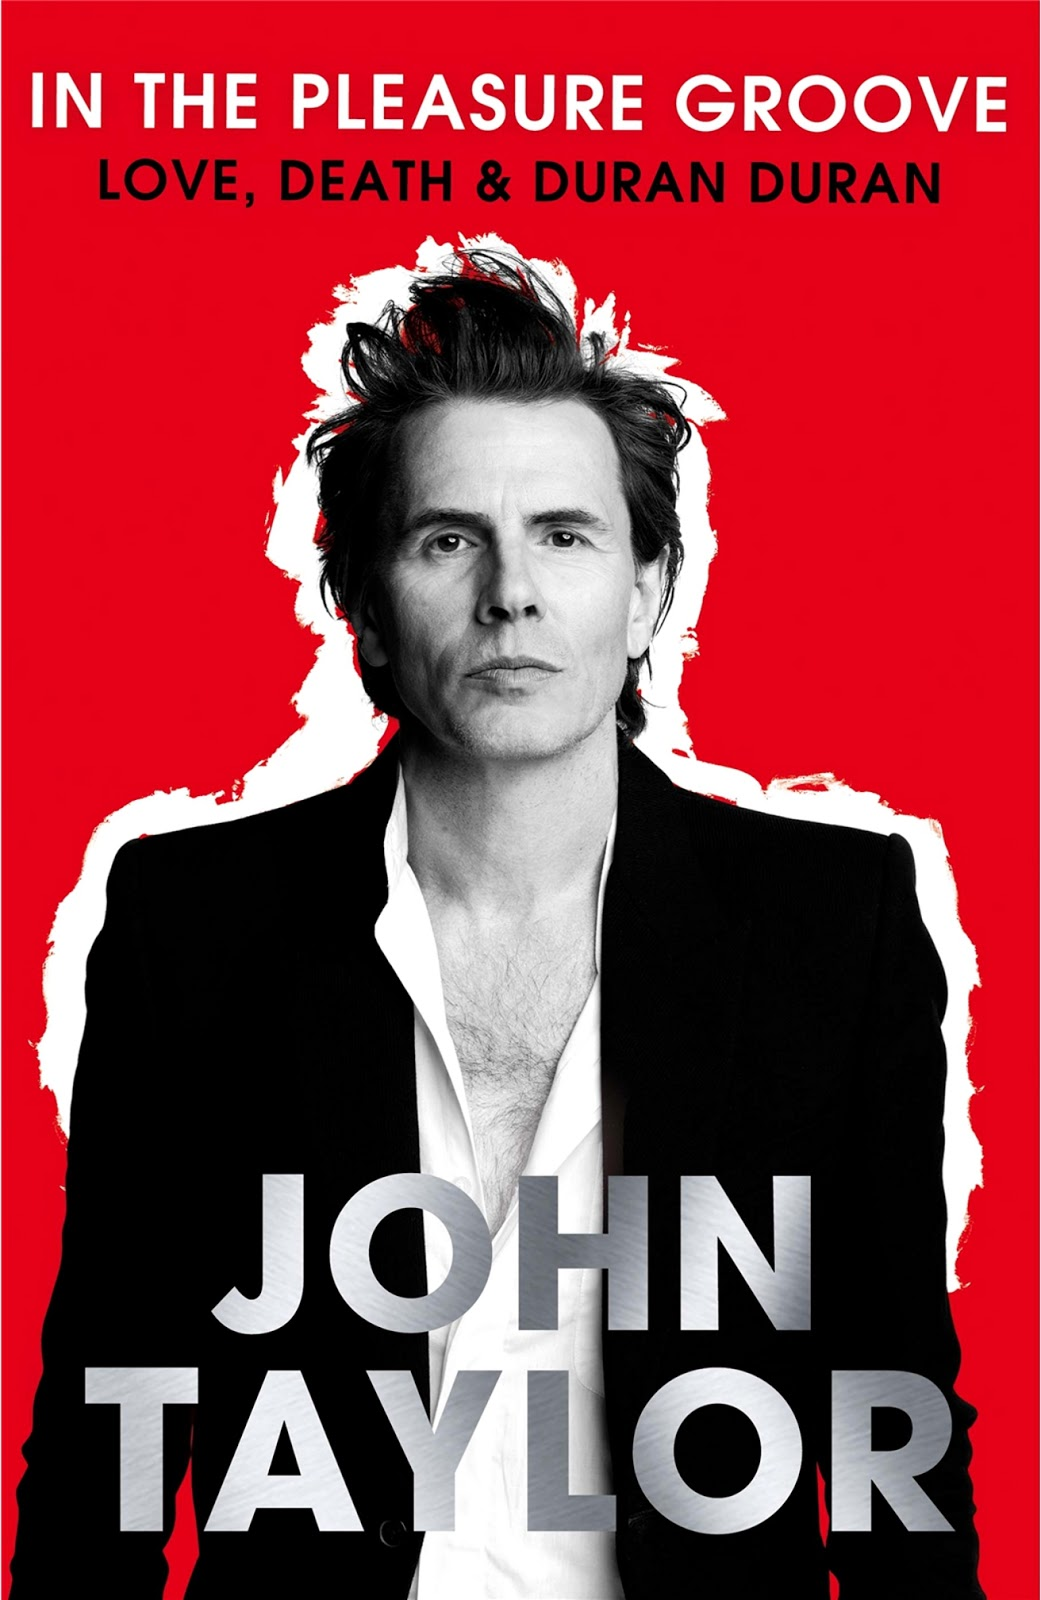 In_The_Pleasure_Groove_-_Love_Death_and_Duran_Duran_wikipedia_book_amazon_john_taylor